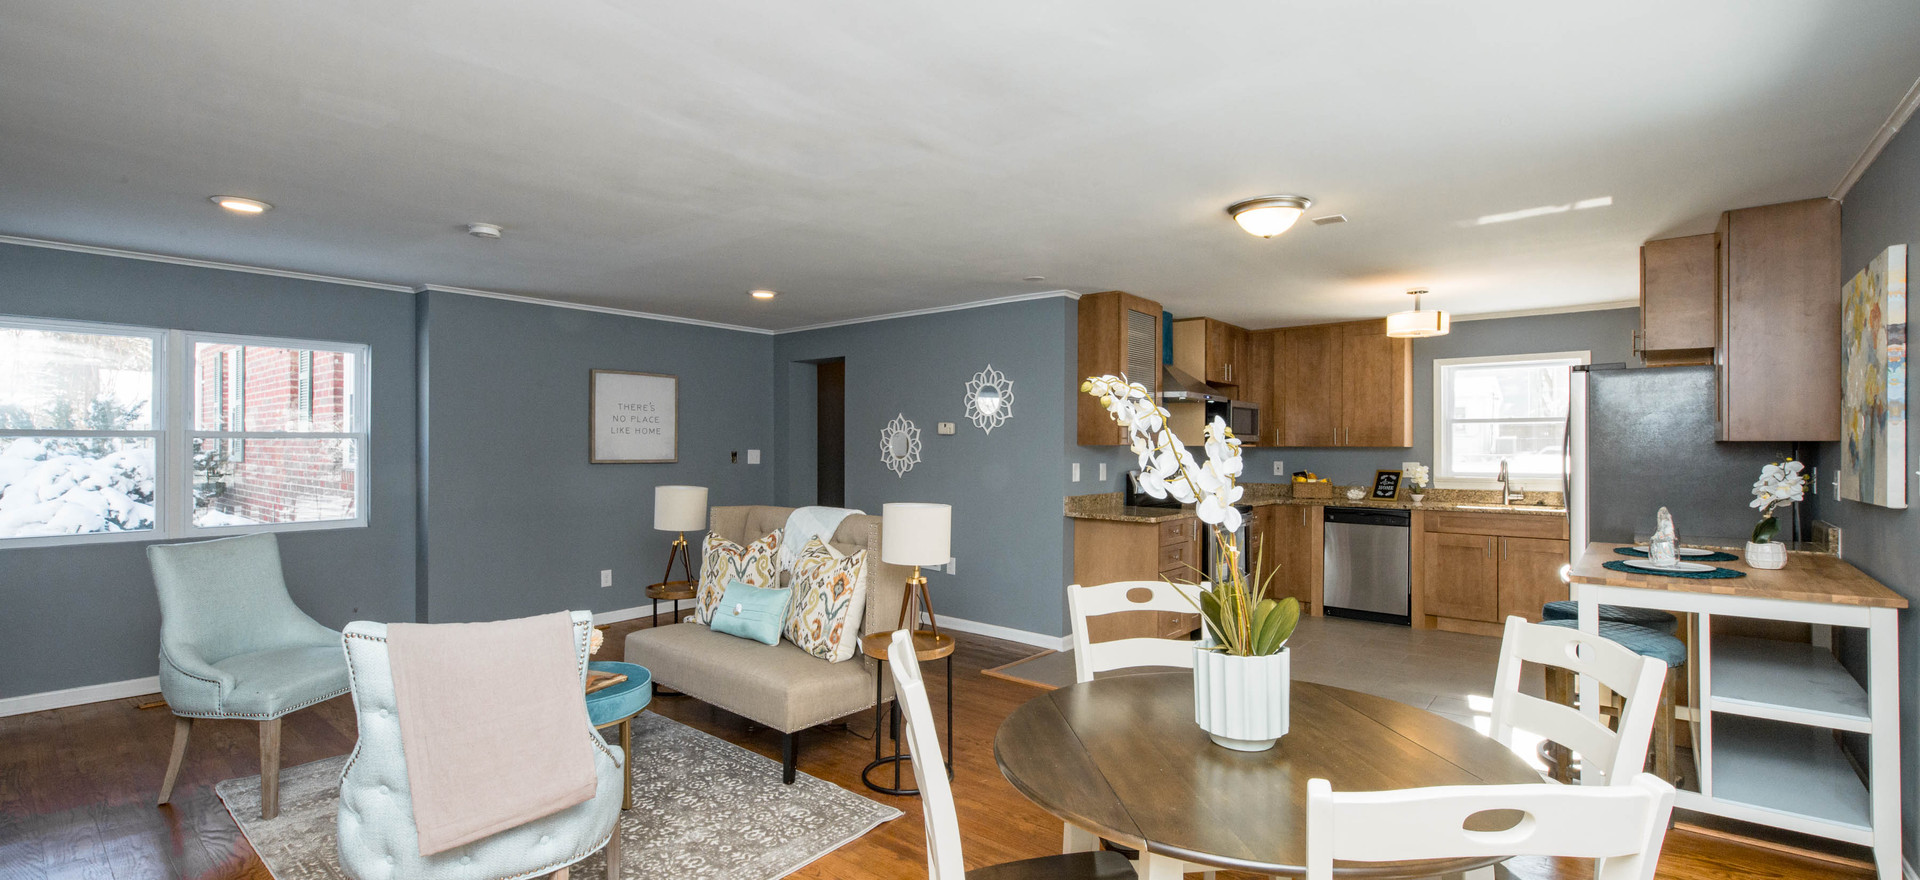 Living/Dining Area (Vacant Staged)